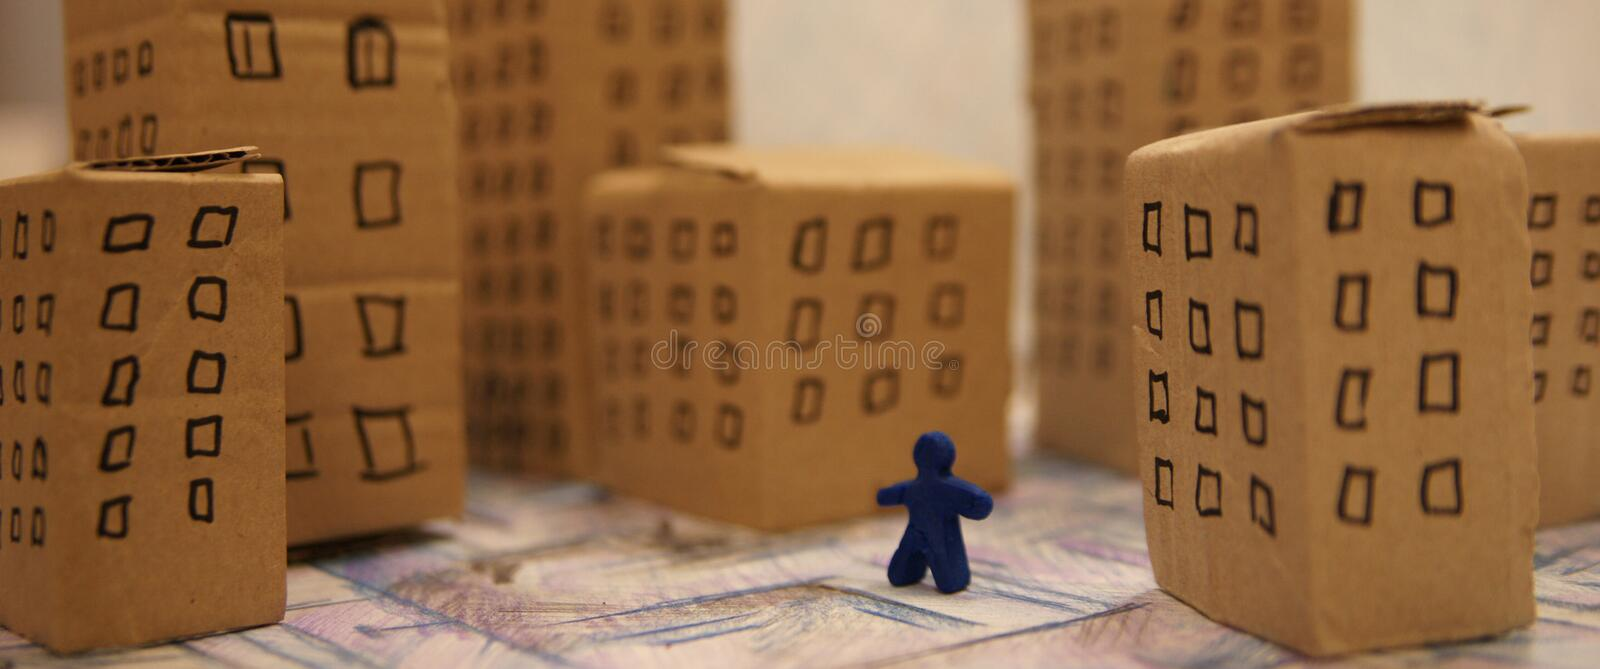 Fake city detail. Cardboard houses and toy figure stock photography